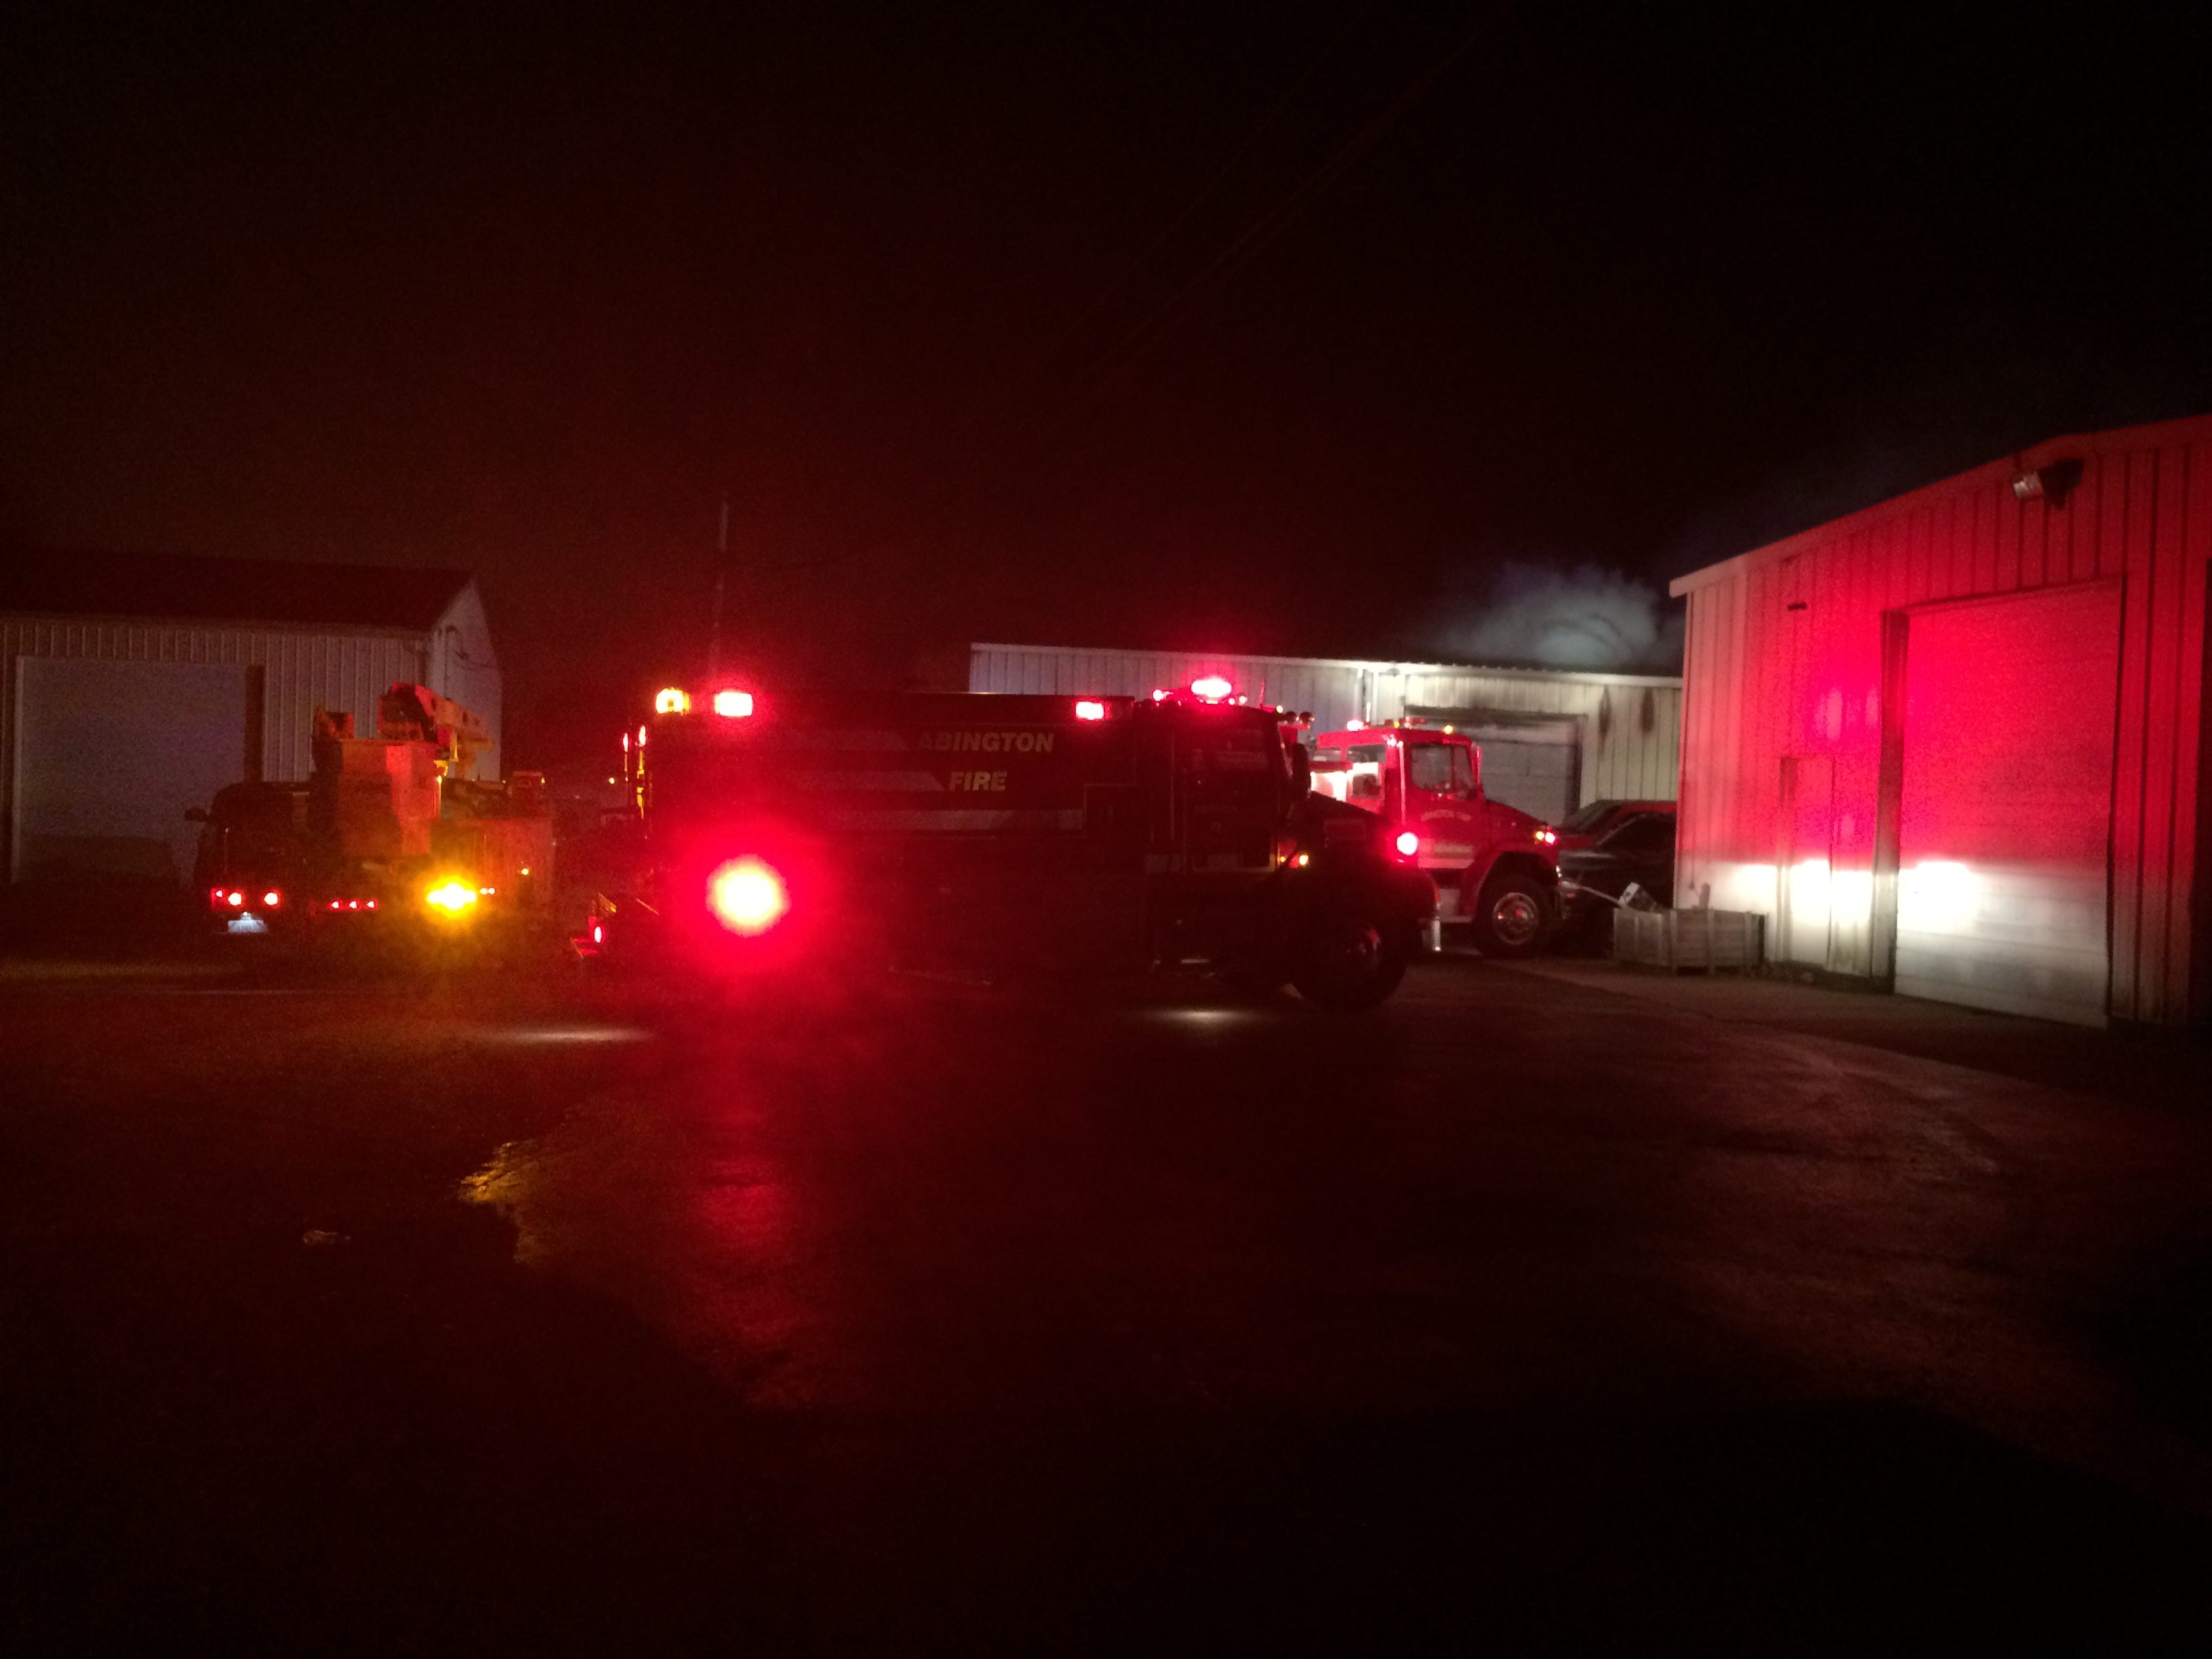 Firefighters were called Thursday night to fight a fire at the Red Diamond Diesel repair shop in the 4100 block of National Road West.